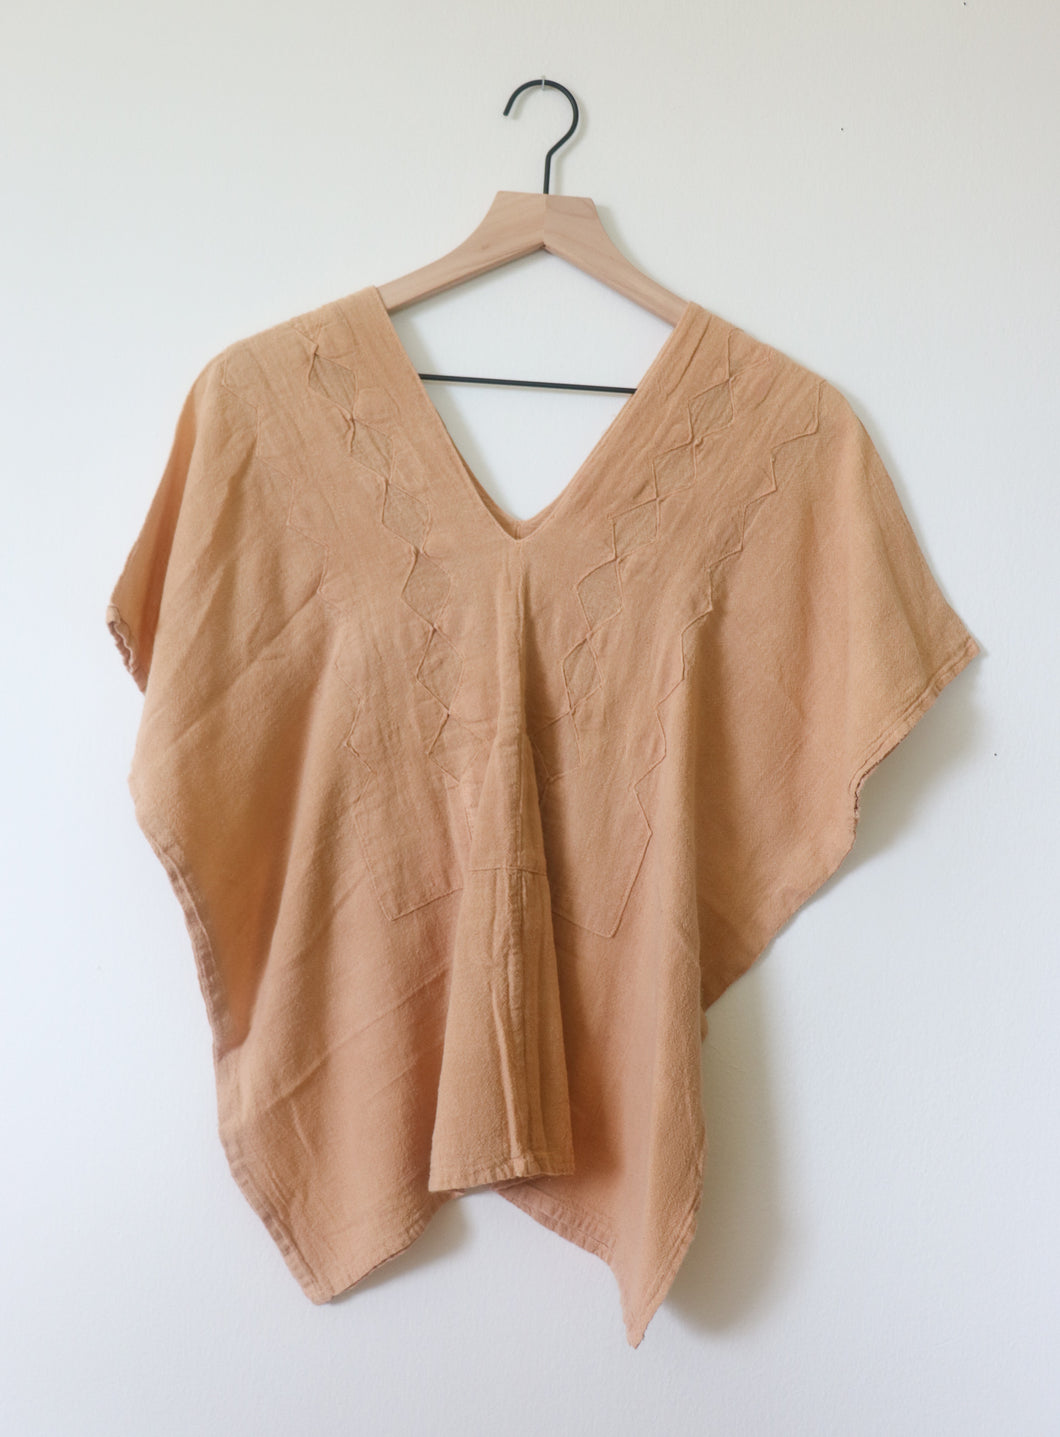 VINTAGE STITCHED TOP- TAN